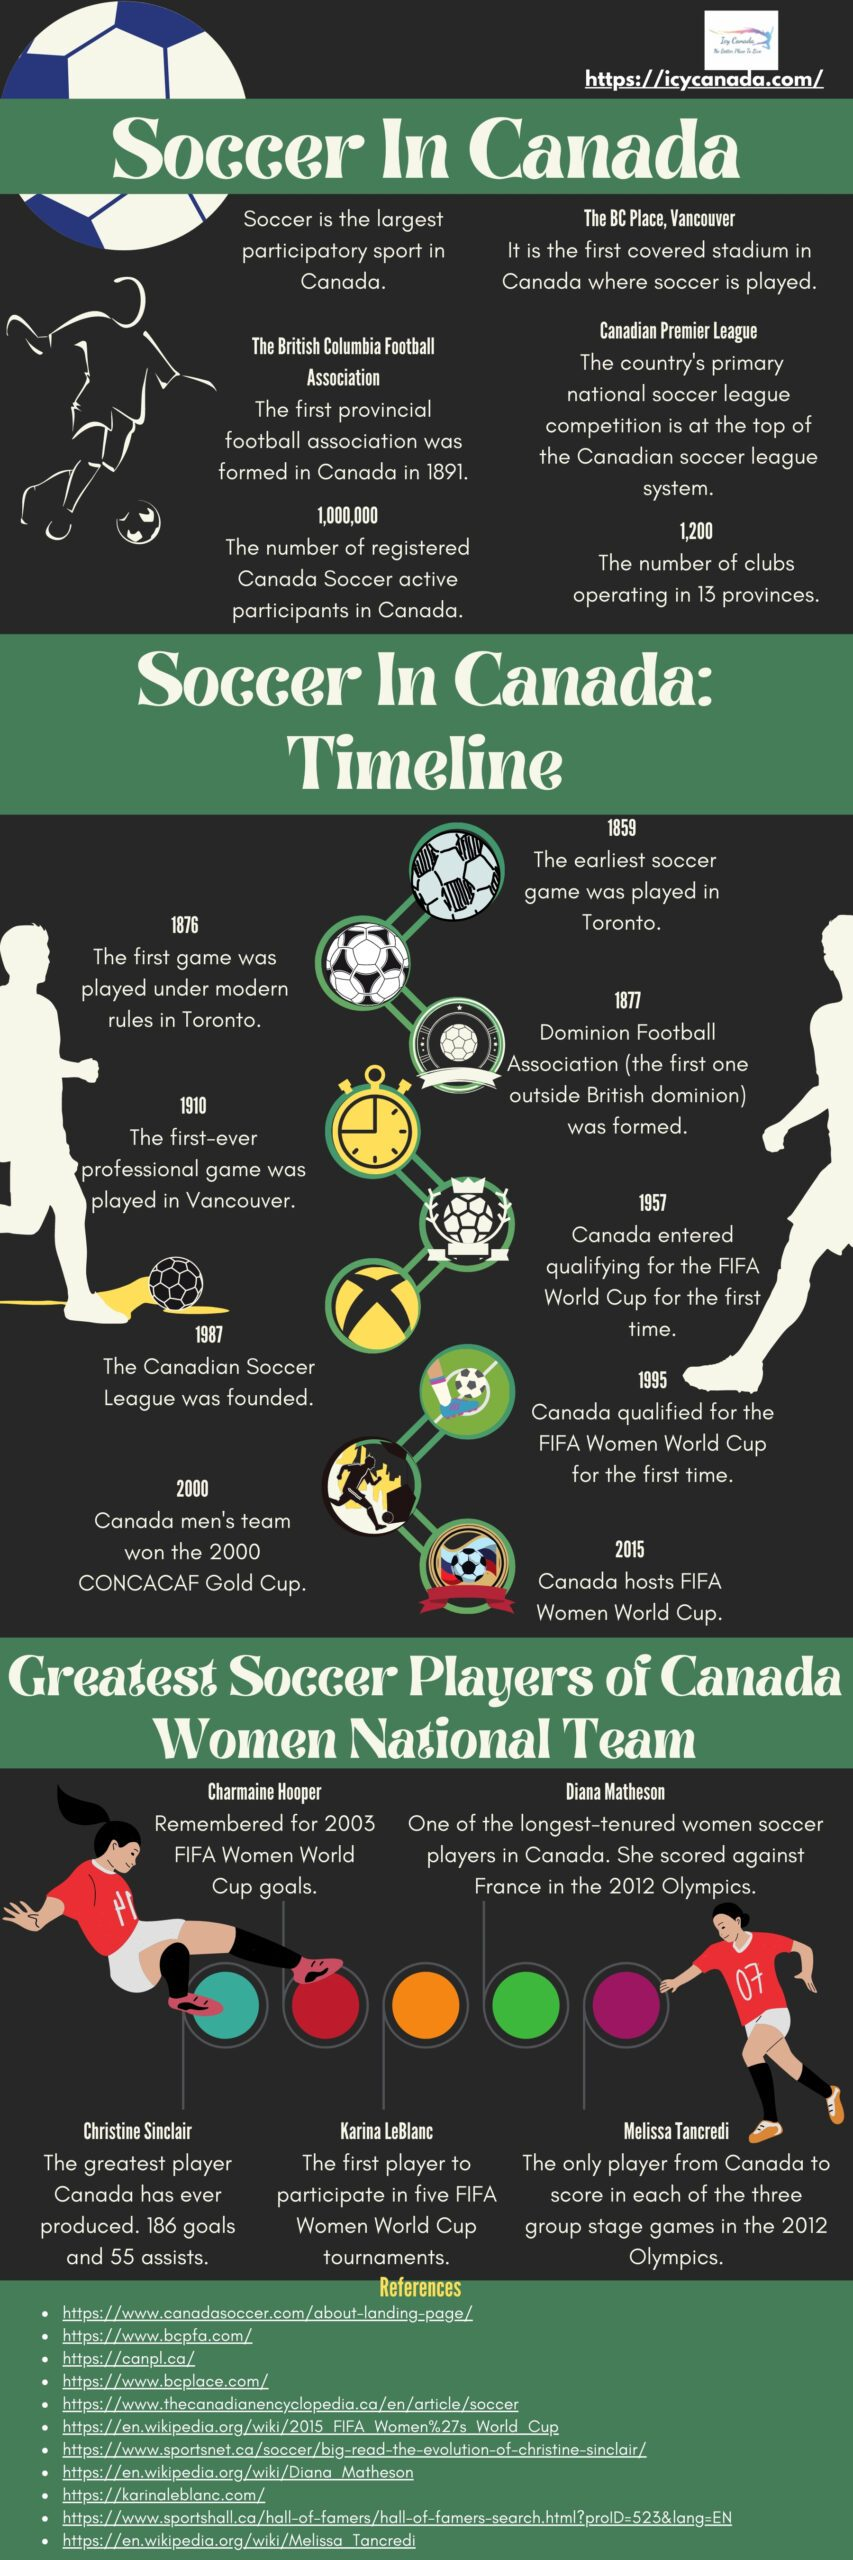 All About Soccer In Canada